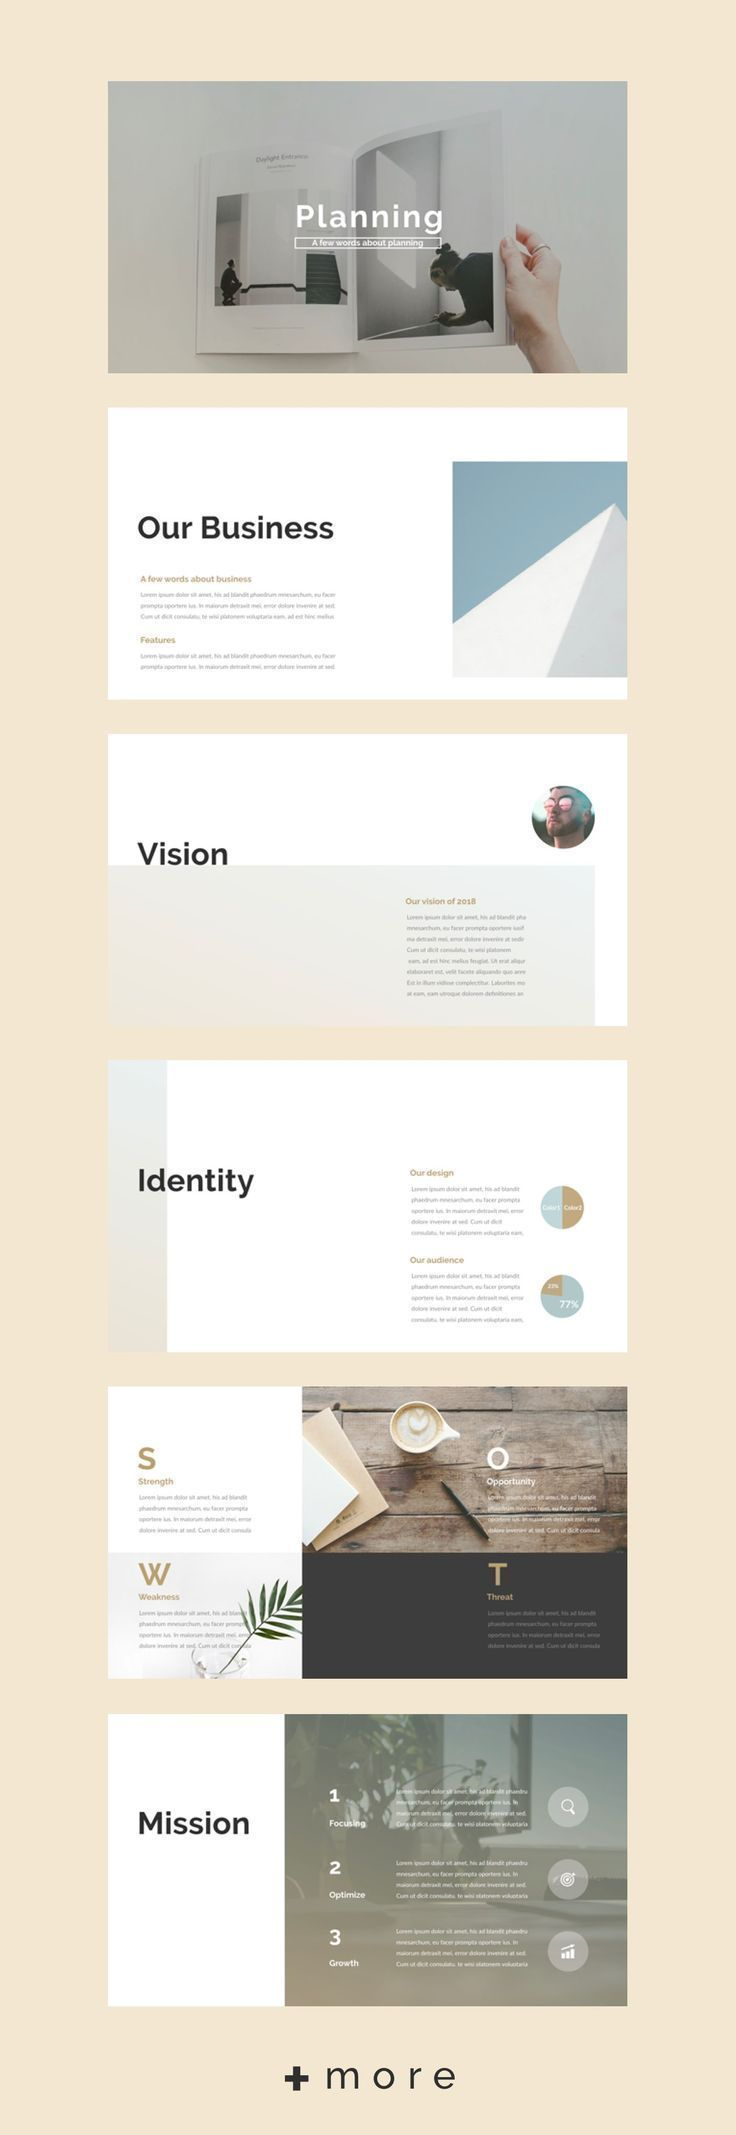 business planning planner powerpoint presentation template simple